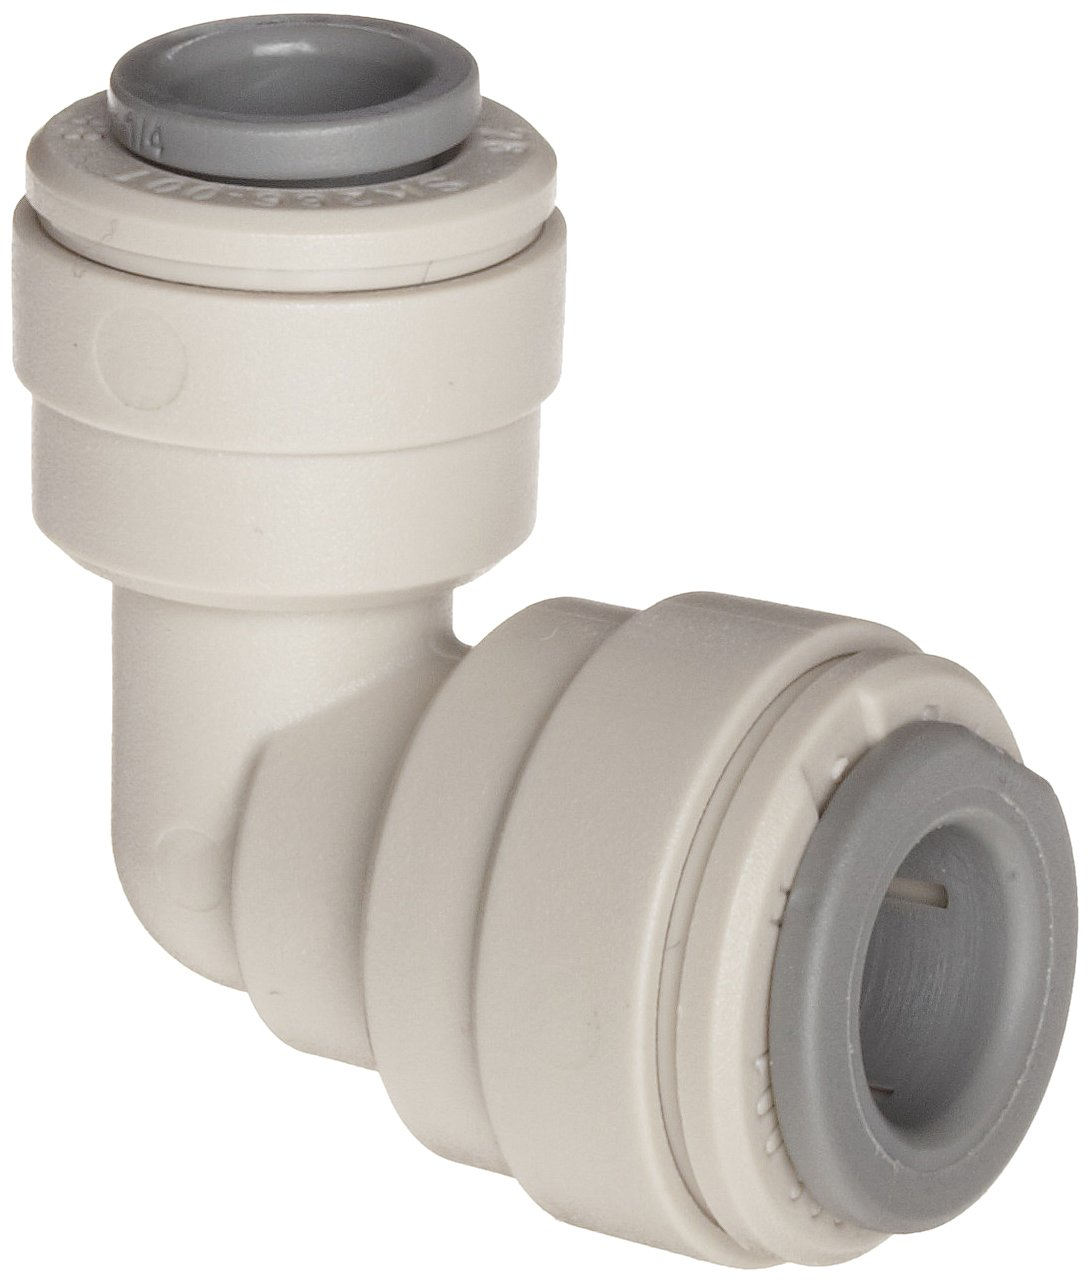 John Guest Acetal Copolymer Tube Fitting, Reducing Elbow, 5/16'' x 1/4'' Tube OD (Pack of 10) by John Guest